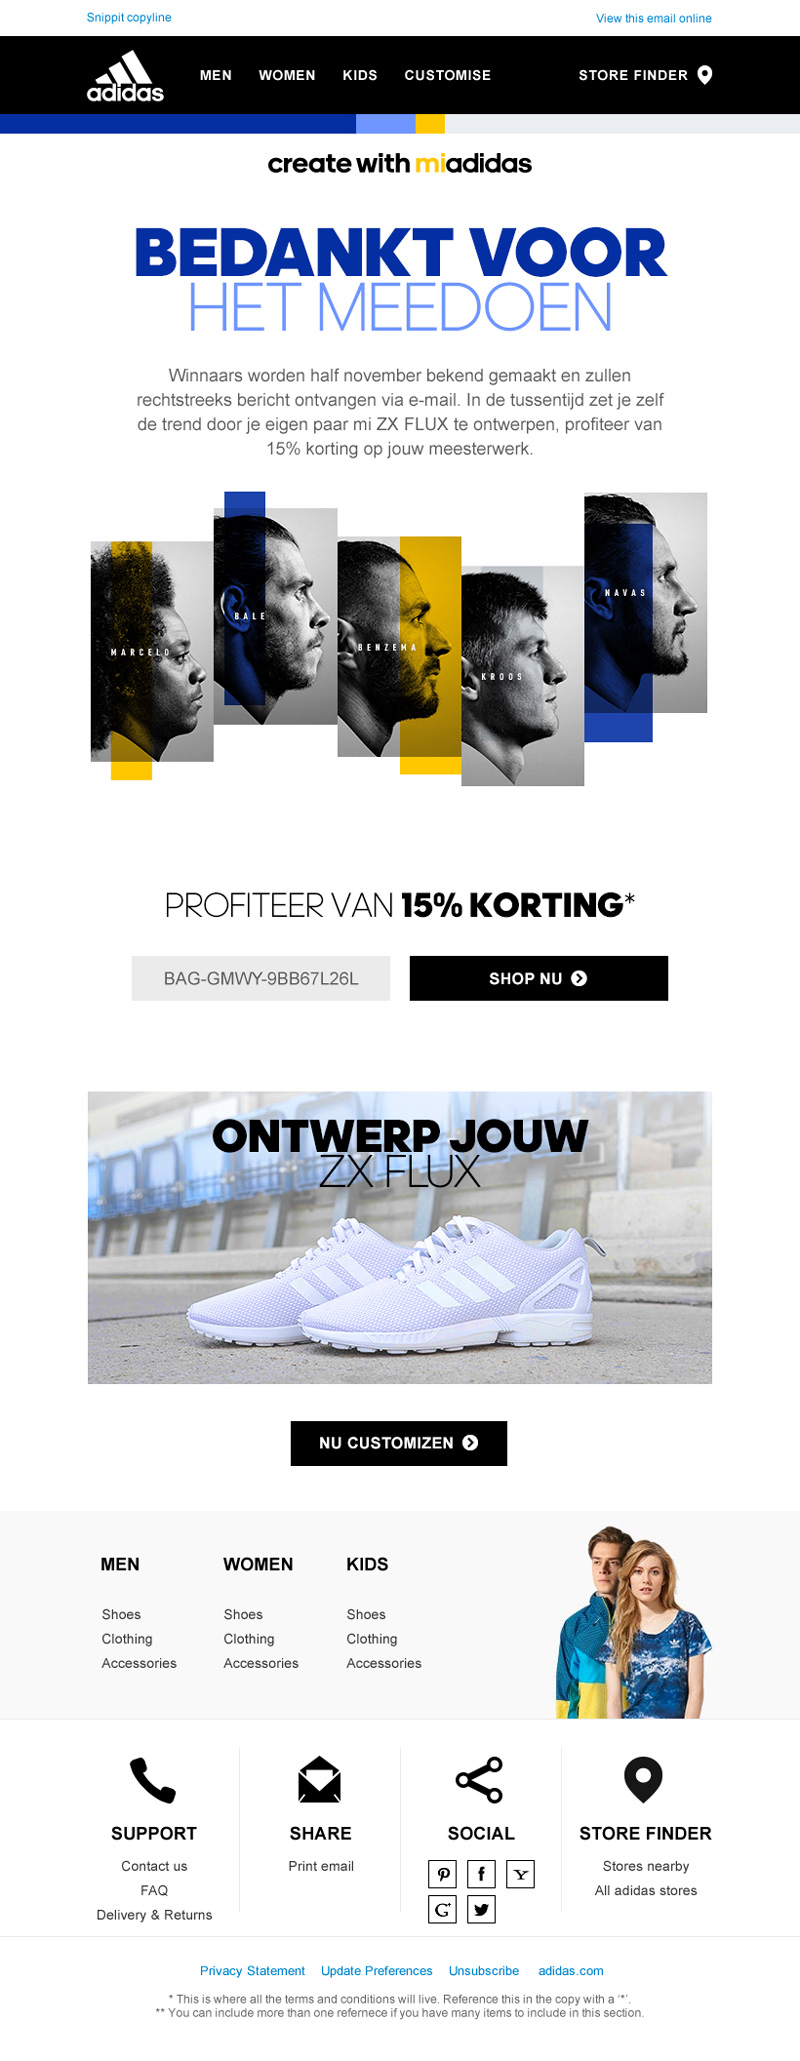 la haute societe webmarketing adidas win mi zx flux